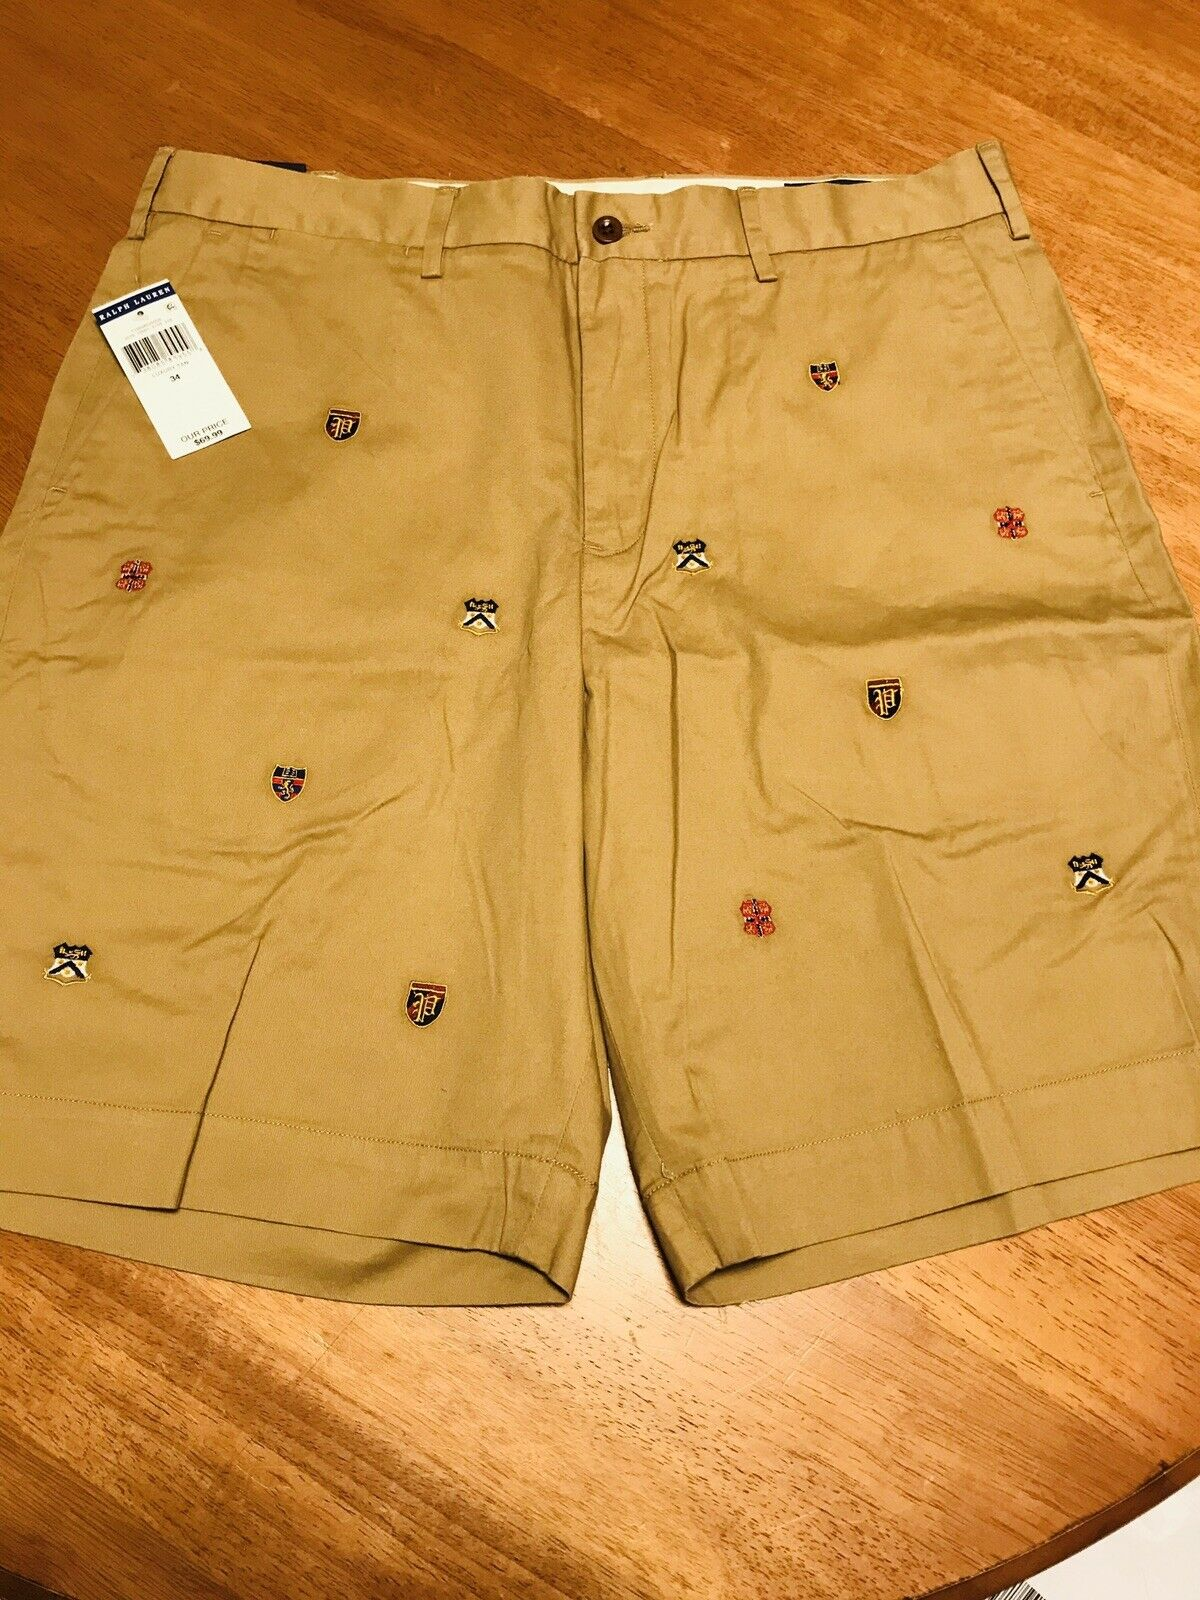 Polo Ralph Lauren Luxury Varsity Crests Shield Embroidered Shorts   Size 34